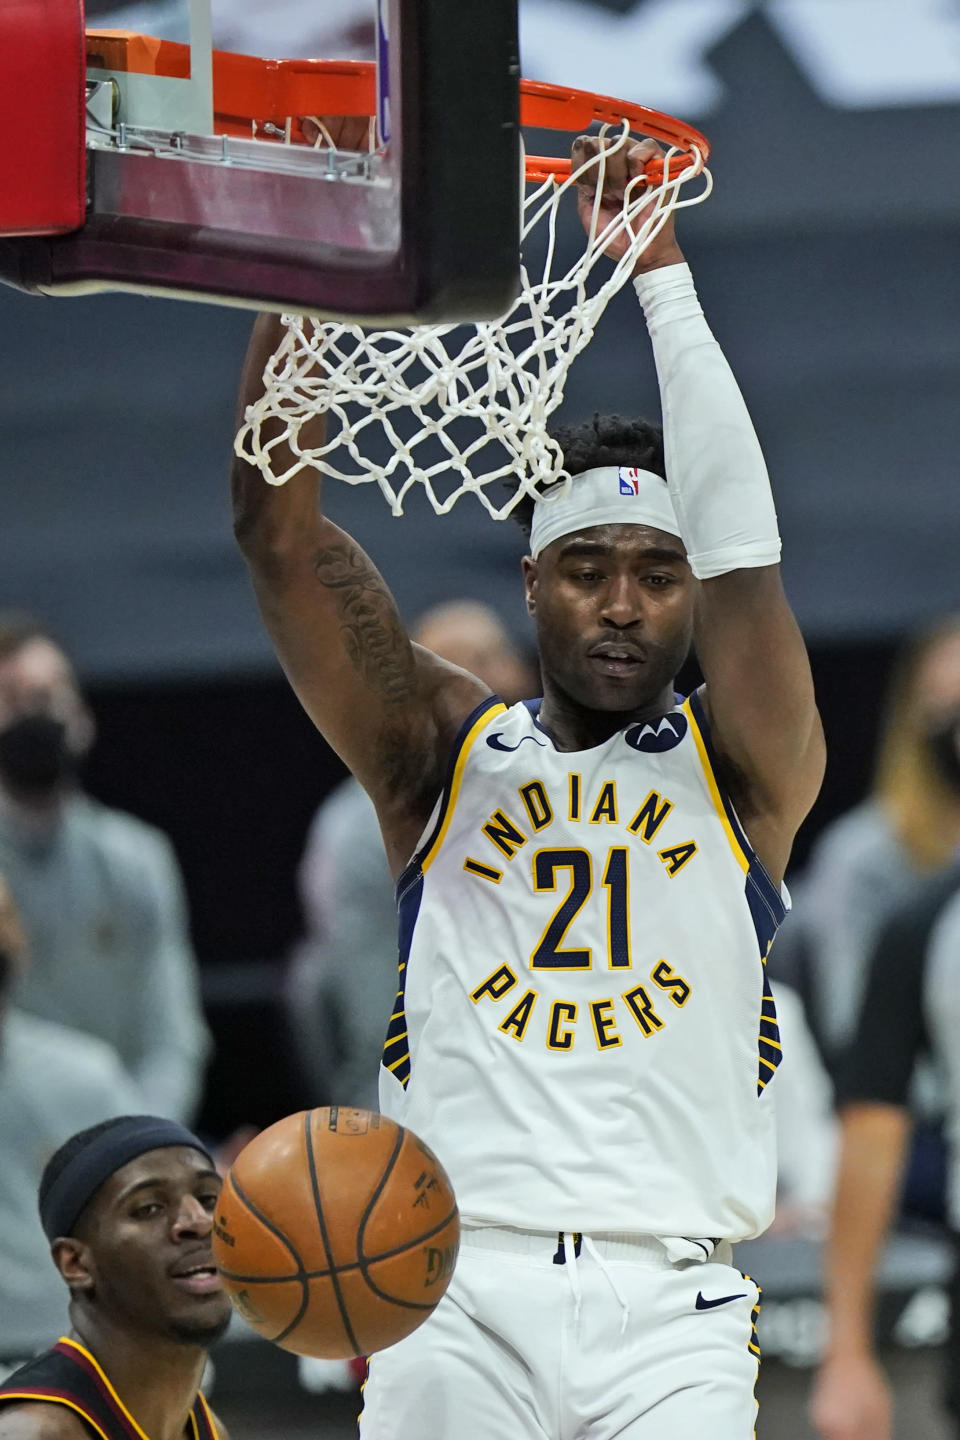 Indiana Pacers' Kelan Martin (21) dunks the ball in the second half of an NBA basketball game against the Cleveland Cavaliers, Monday, May 10, 2021, in Cleveland. (AP Photo/Tony Dejak)